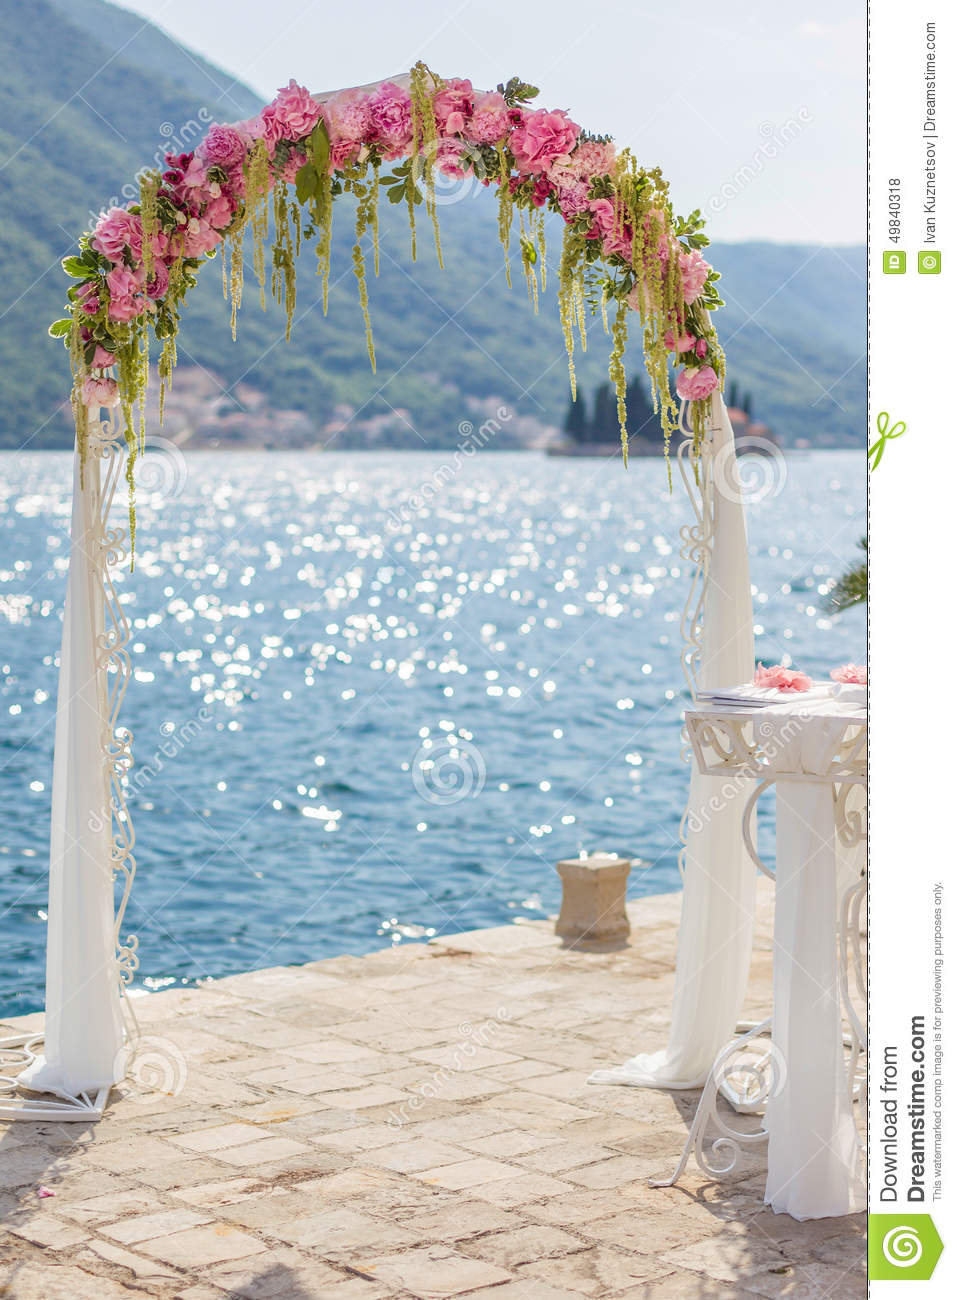 Wedding Arch Decorations Wedding Arch With Flowers Stock Photo Image 49840318